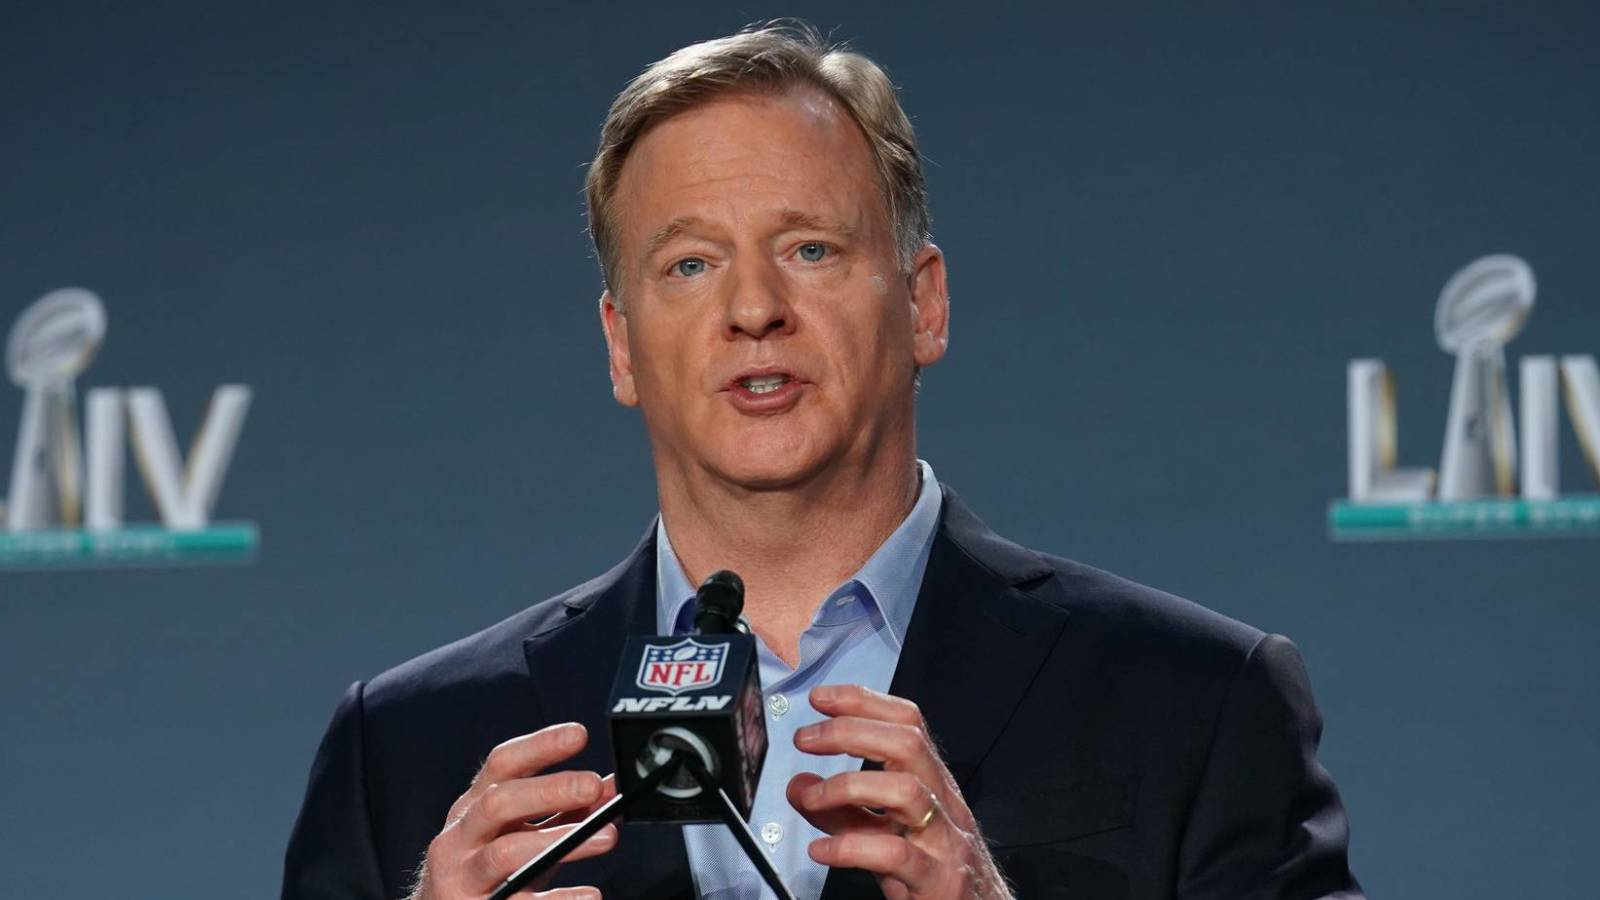 Thumbs-up or thumbs-down? Rating the major points of the NFL CBA proposal